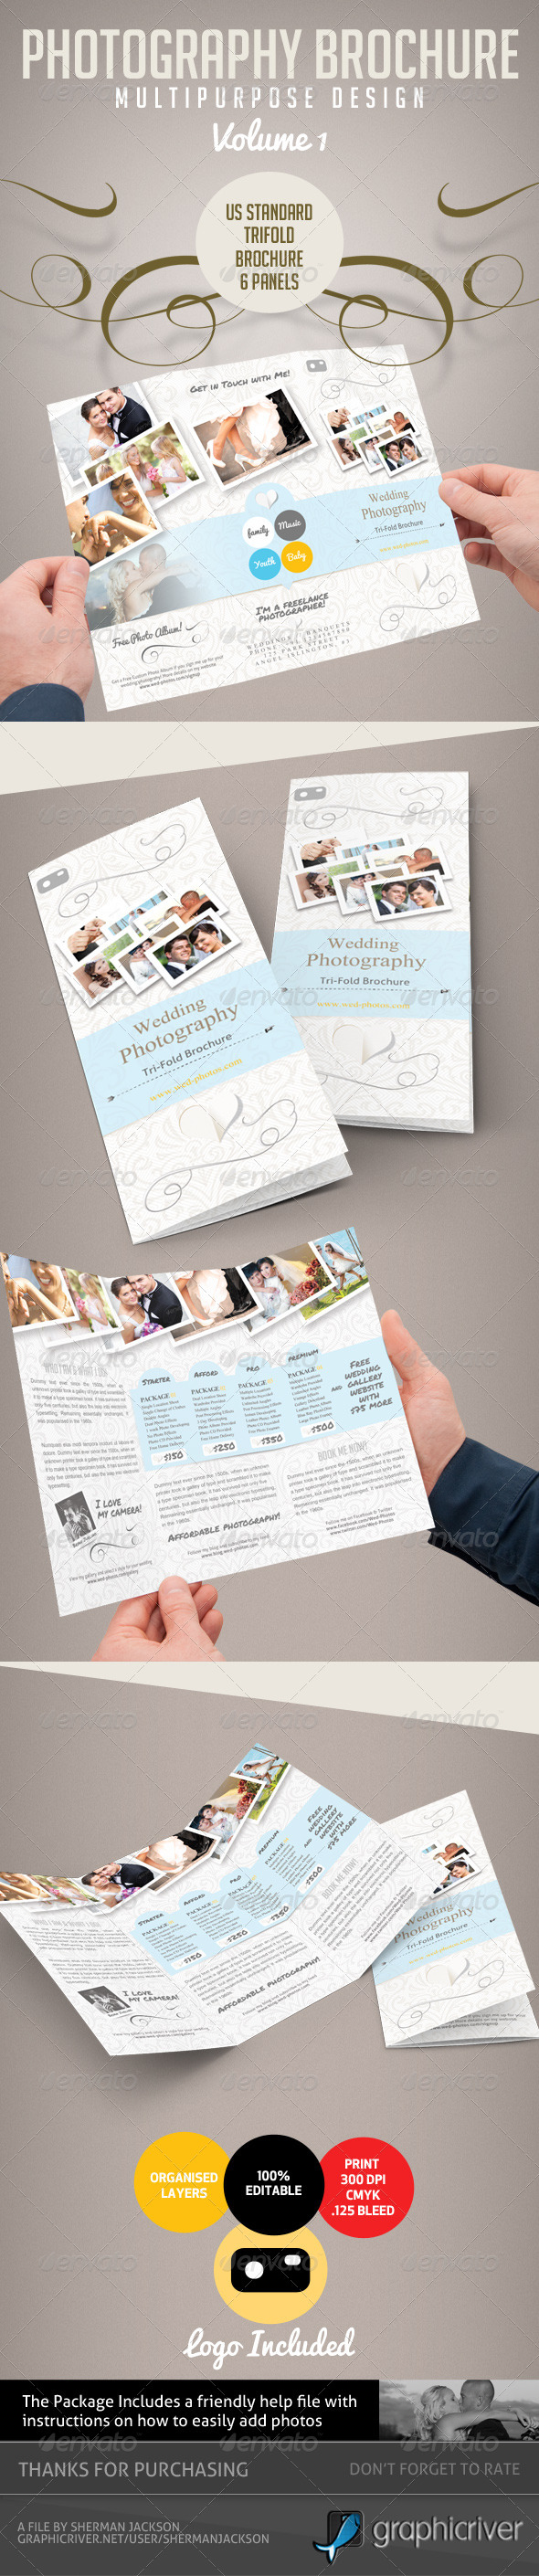 Pro Photography Trifold Brochure - Volume 1 - Brochures Print Templates